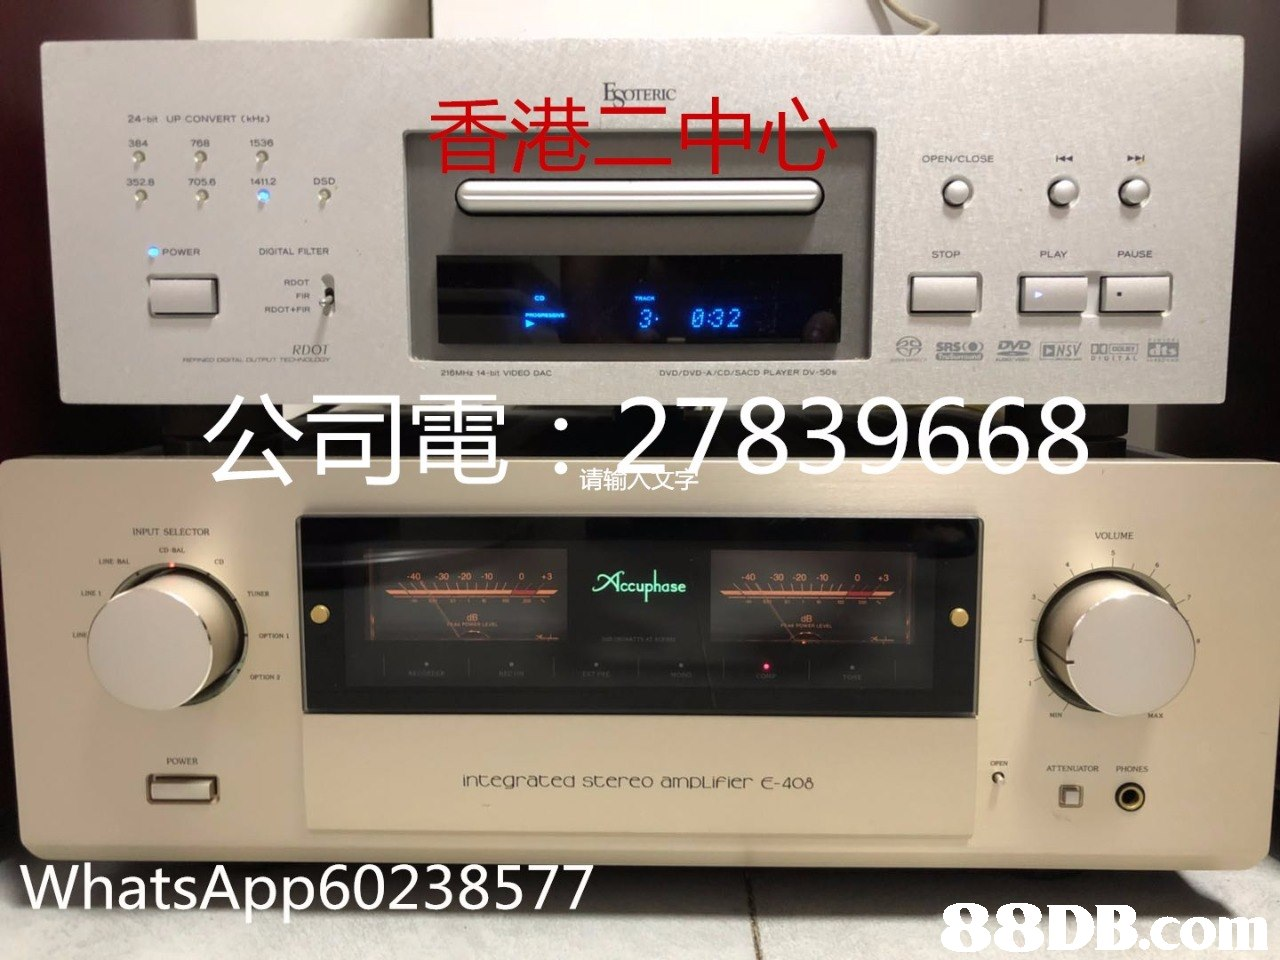 ESOTERIC 香港二中心 24-bit UP CONVERT CkH) 536 708 OPEN/CLOSE DSD 705 ฮ 14112 3528 DIOITAL FILTER POWER STOP PLAY PAUSE RDOT 3. 032 RI PLAYER DV 50s 2I0MHa 14-bit VIDEO DAC 子 INPUT SELECTOR VOLUME CD SAL LINE RAL ce Accuphase 0 3 40 30 20 10 LINE OPTION POWER integratea stereo amDLifier -408 WhatsApp60238577  Electronics,Technology,Electronic device,Audio equipment,Audio receiver